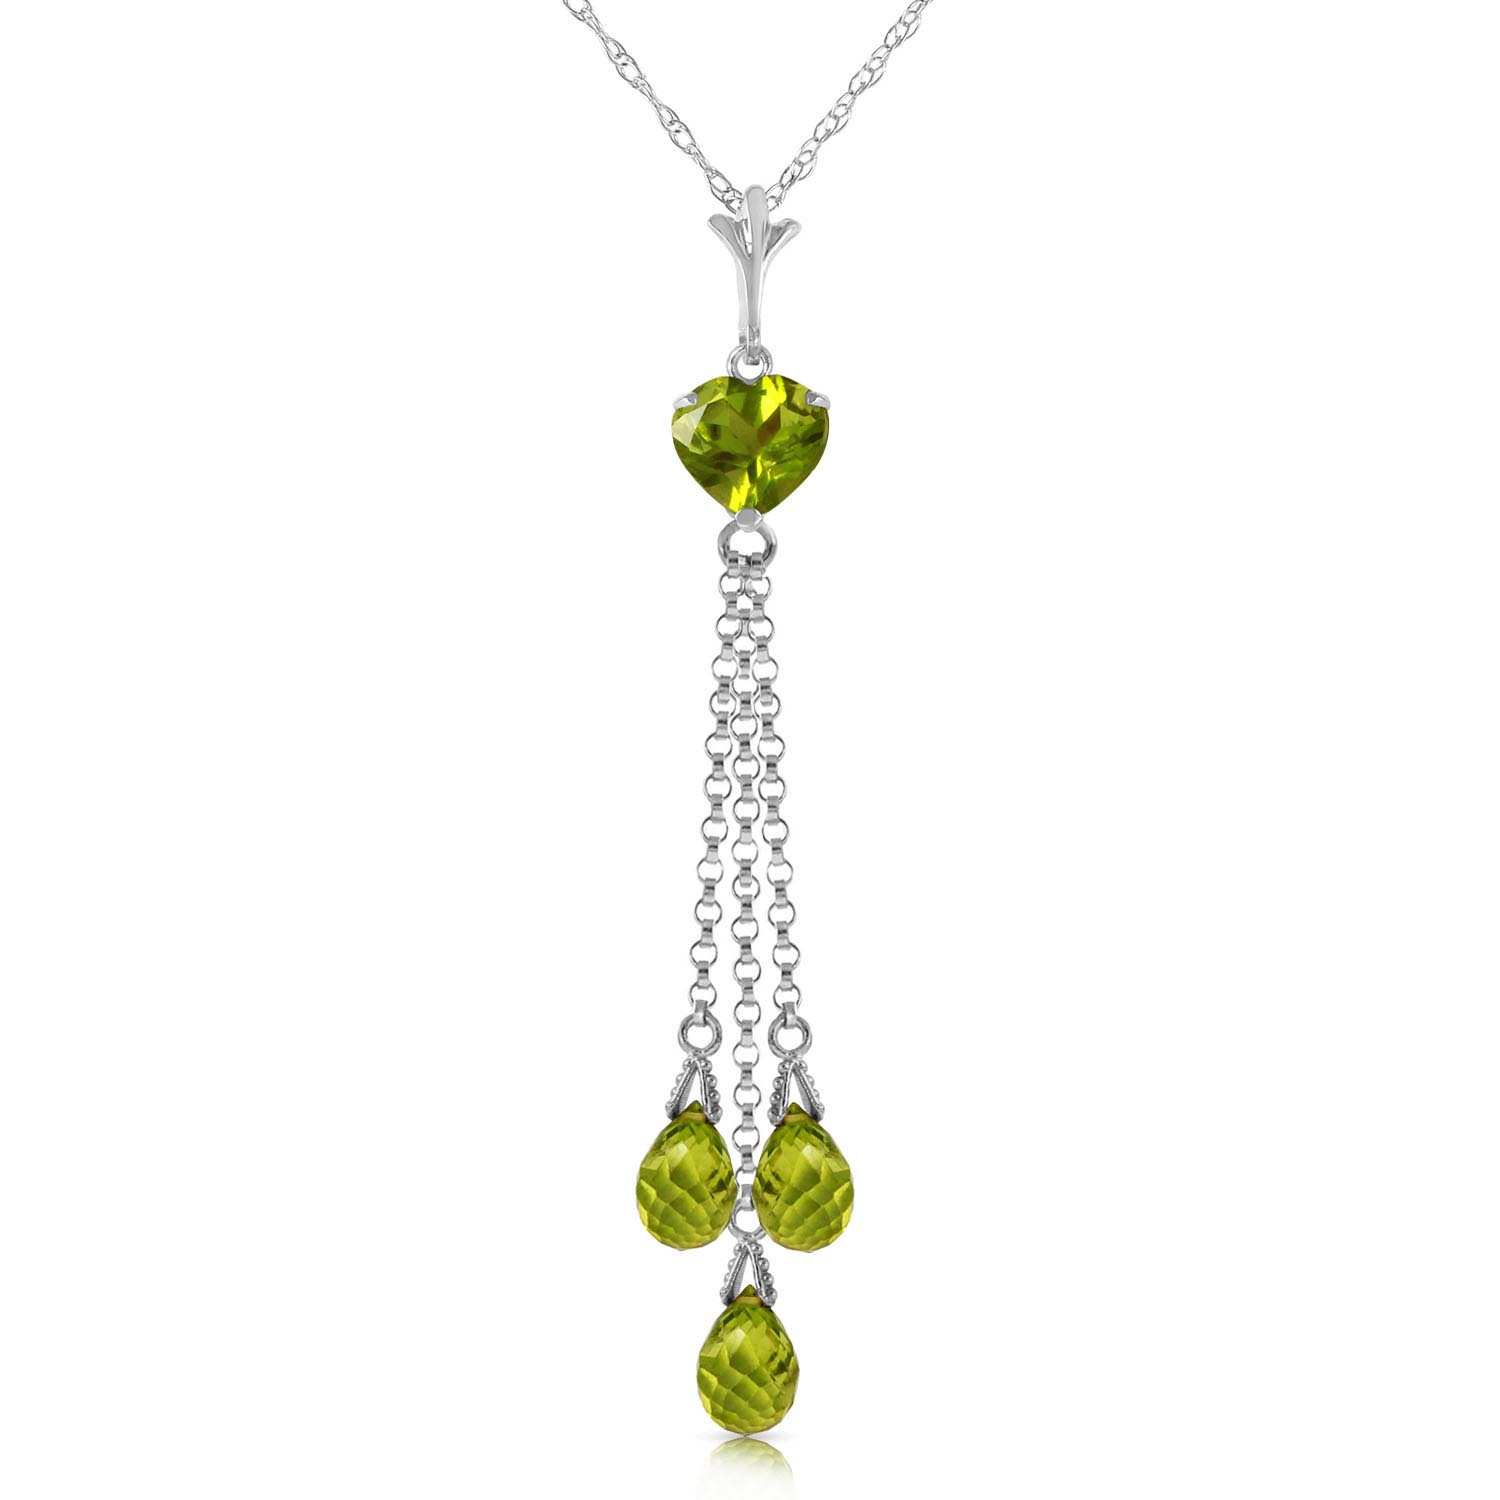 Peridot Comet Tail Pendant Necklace 4.75 ctw in 9ct White Gold